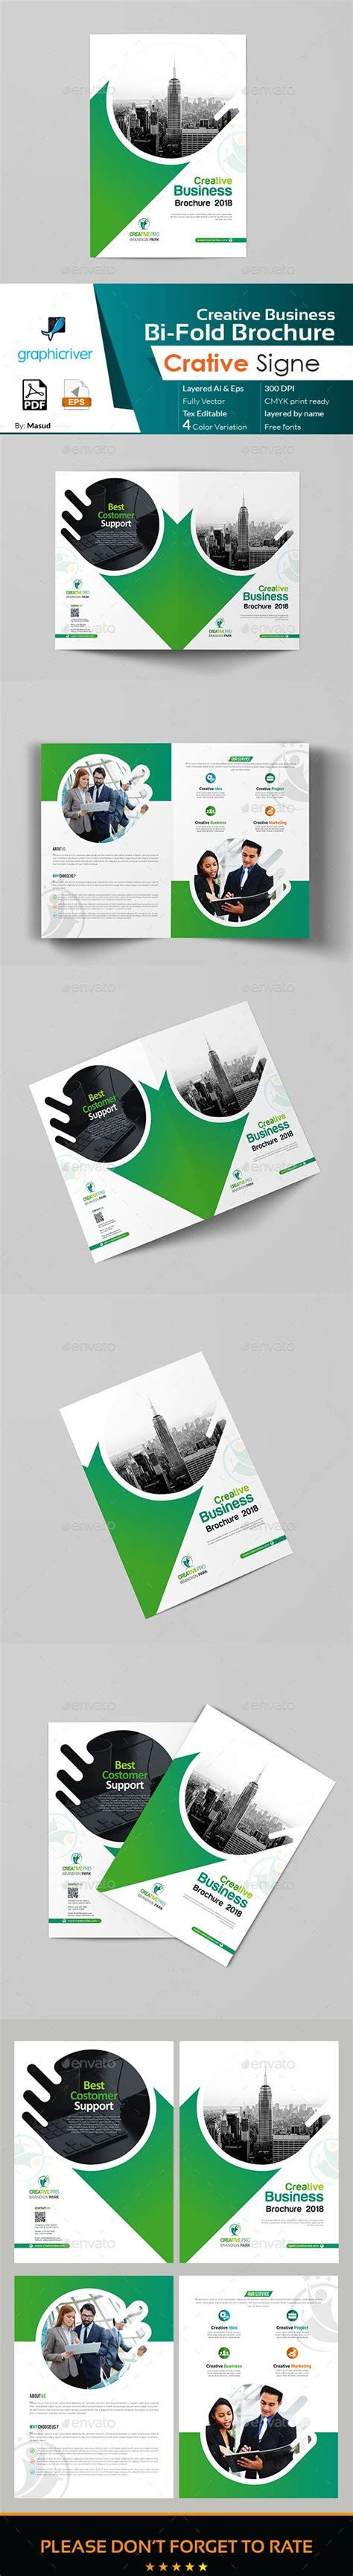 bi fold brochure template illustrator business bi fold brochure template vector eps ai